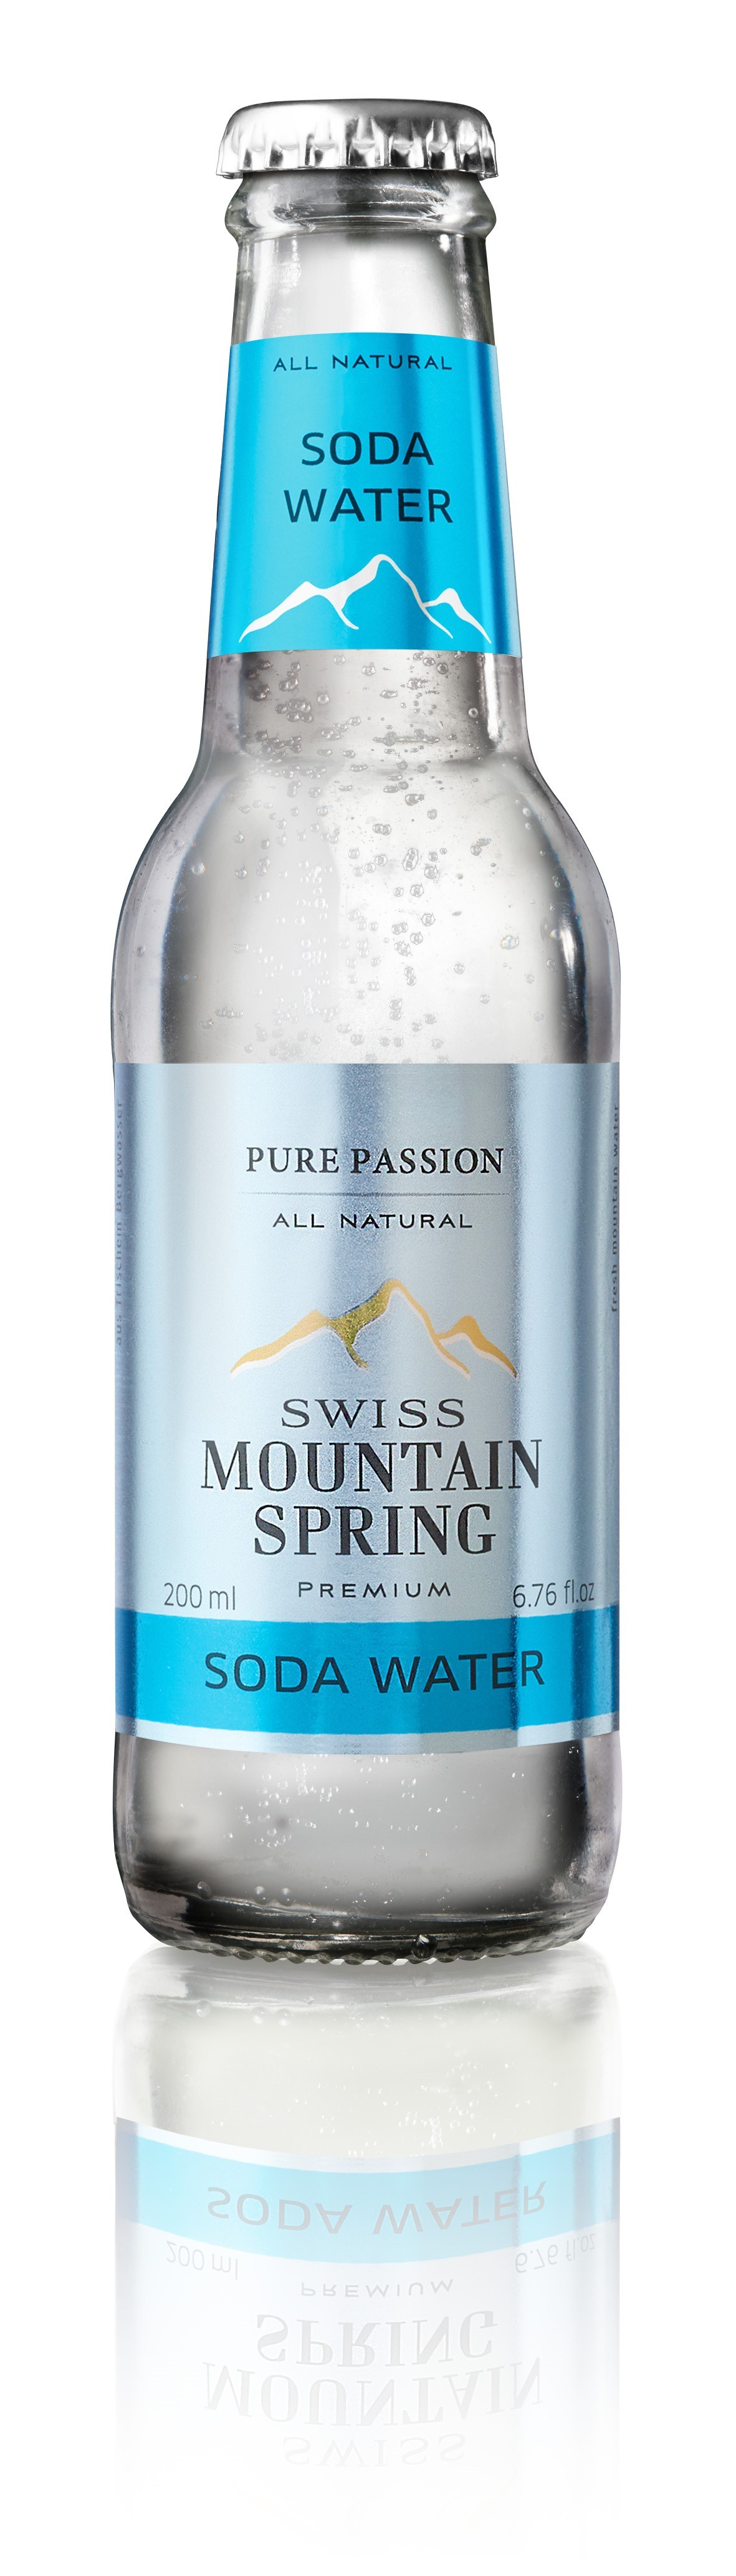 Swiss Mountain Spring - Soda Water (6 x 20 CL)